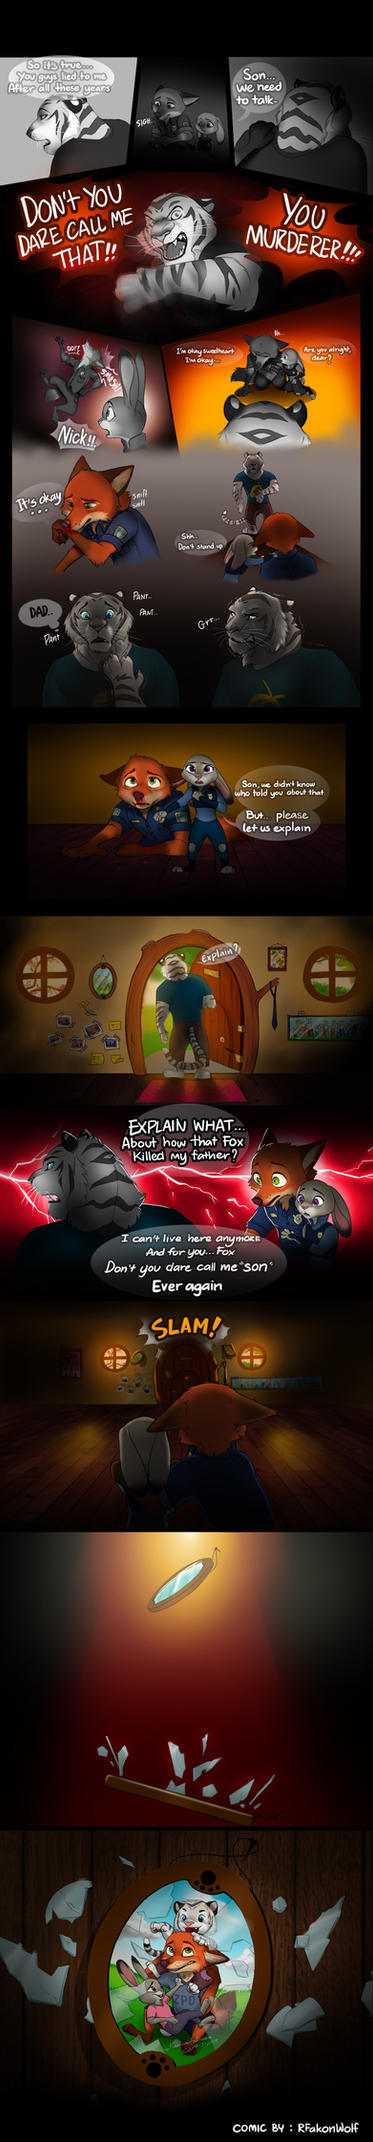 The White Tiger - Zootopia fans comic by RFakonWolf